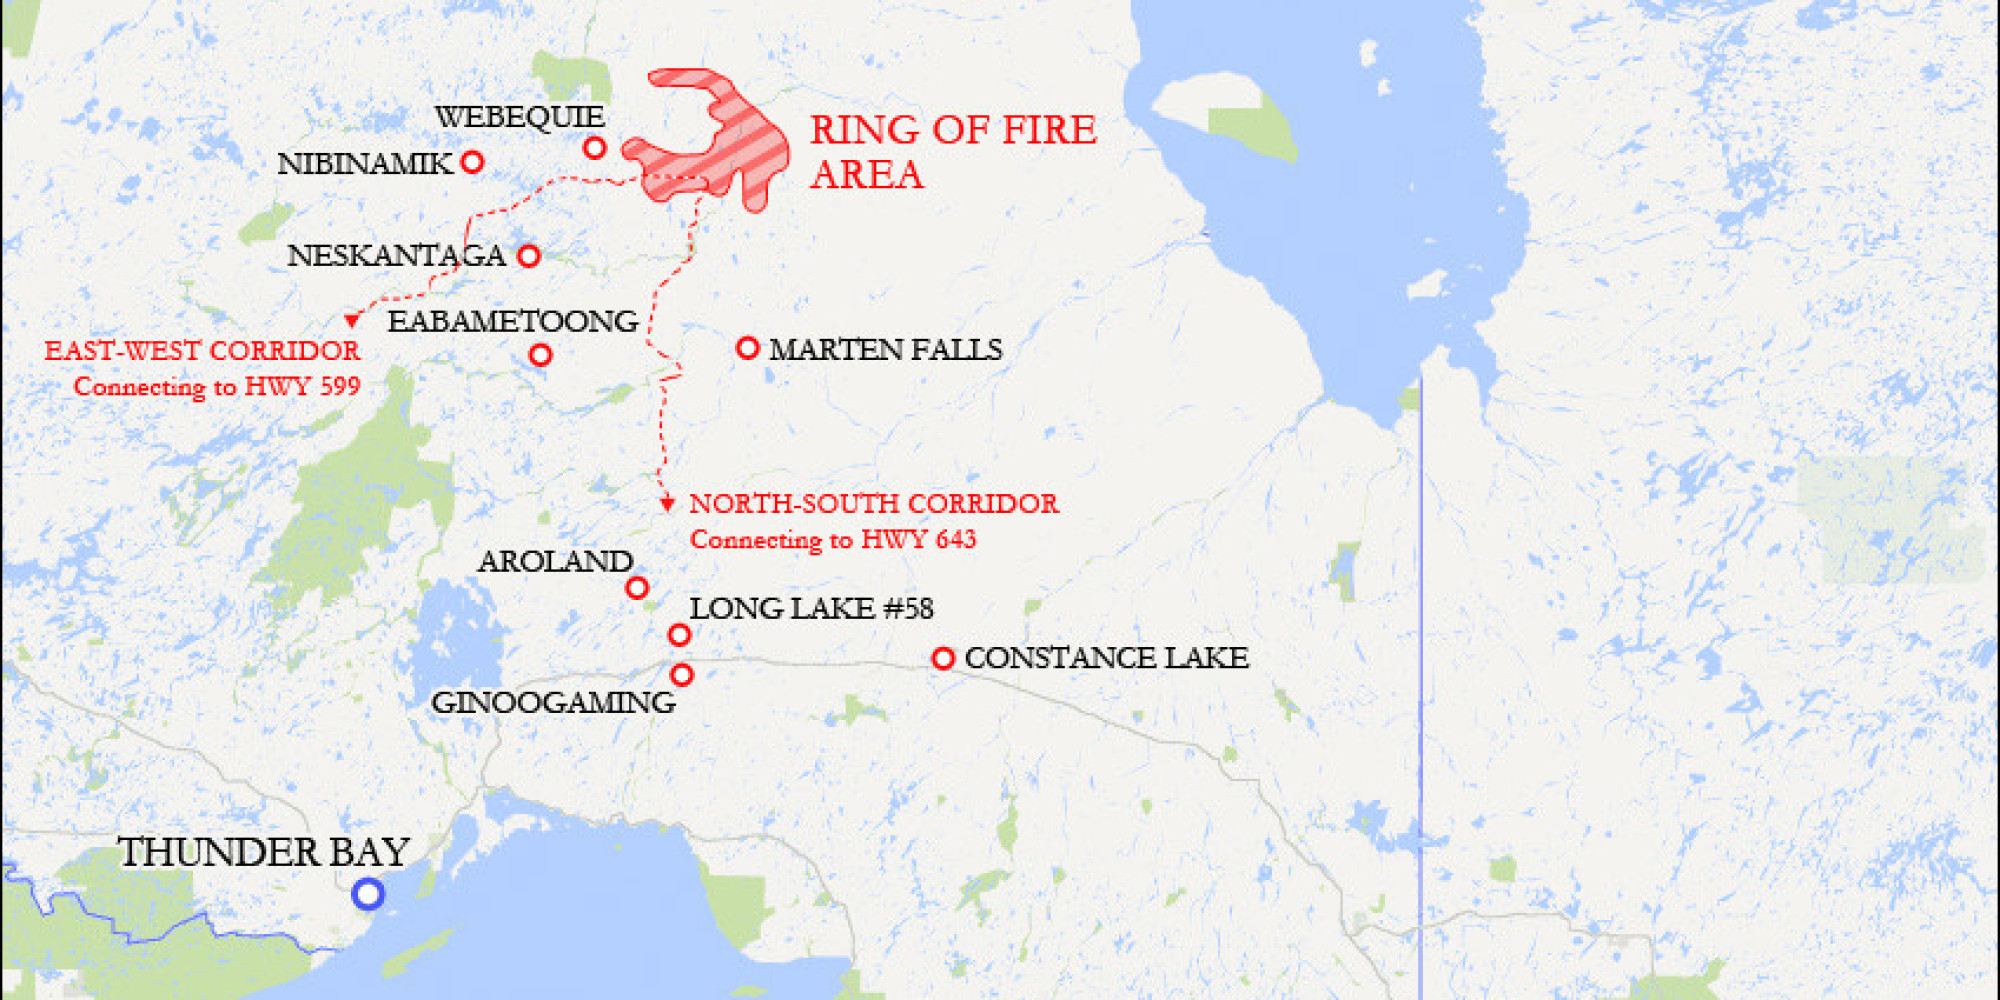 Ontario S Ring Of Fire No Going Back If Mistakes Are Made